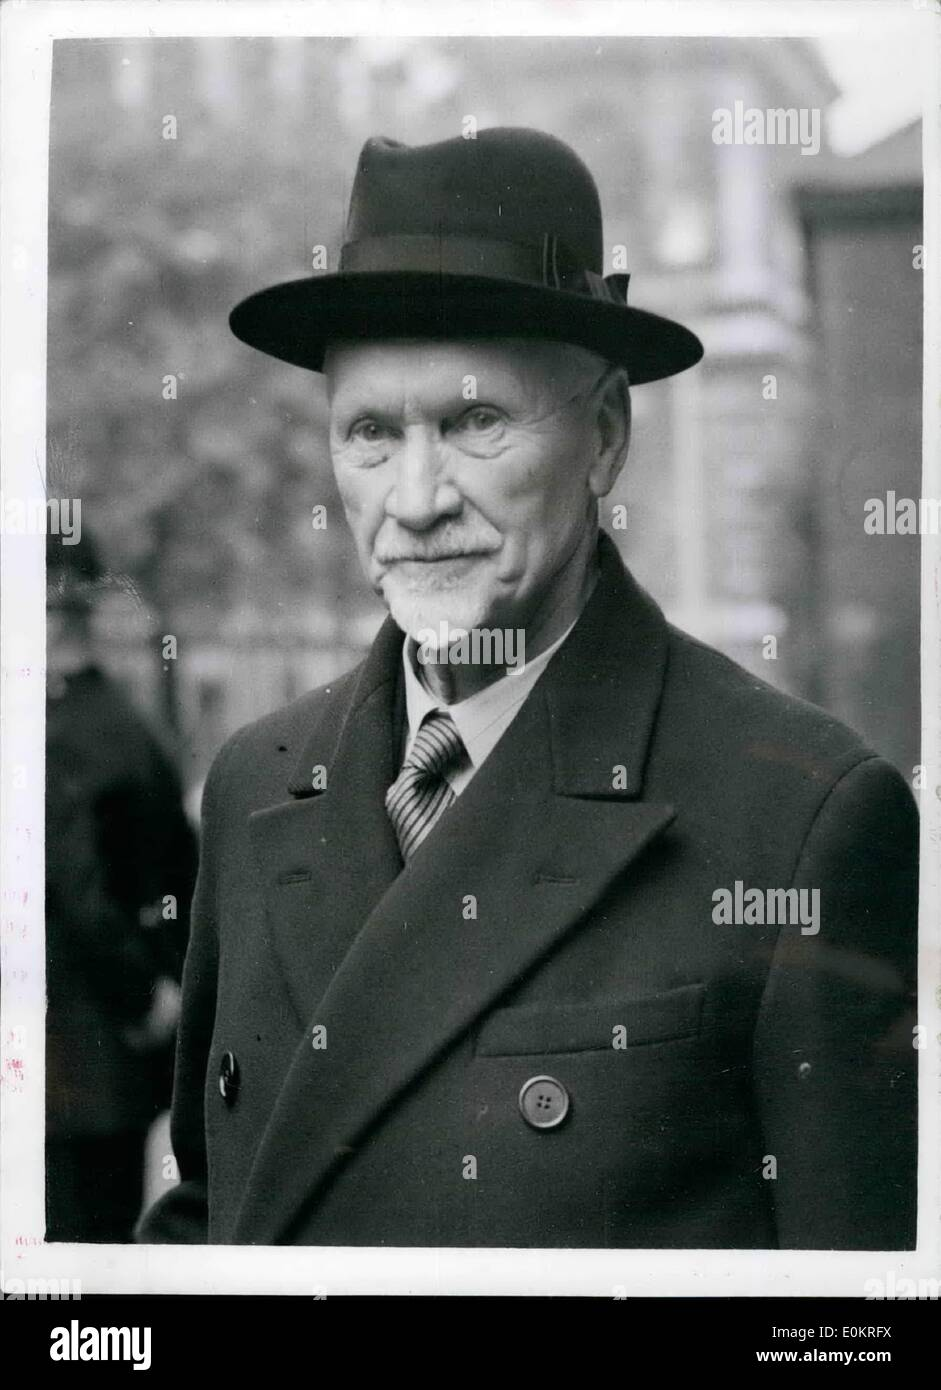 Oct. 10, 1946 - General Smuts sees the Prime Minister: General Smuts arrived at Northolt aerodome yesterday from Brussels. Today he visited Mr. Attlee at No. 10 Downing Street. Photo shows General Smuts photographed on arrival at No. 10 this morning. - Stock Image